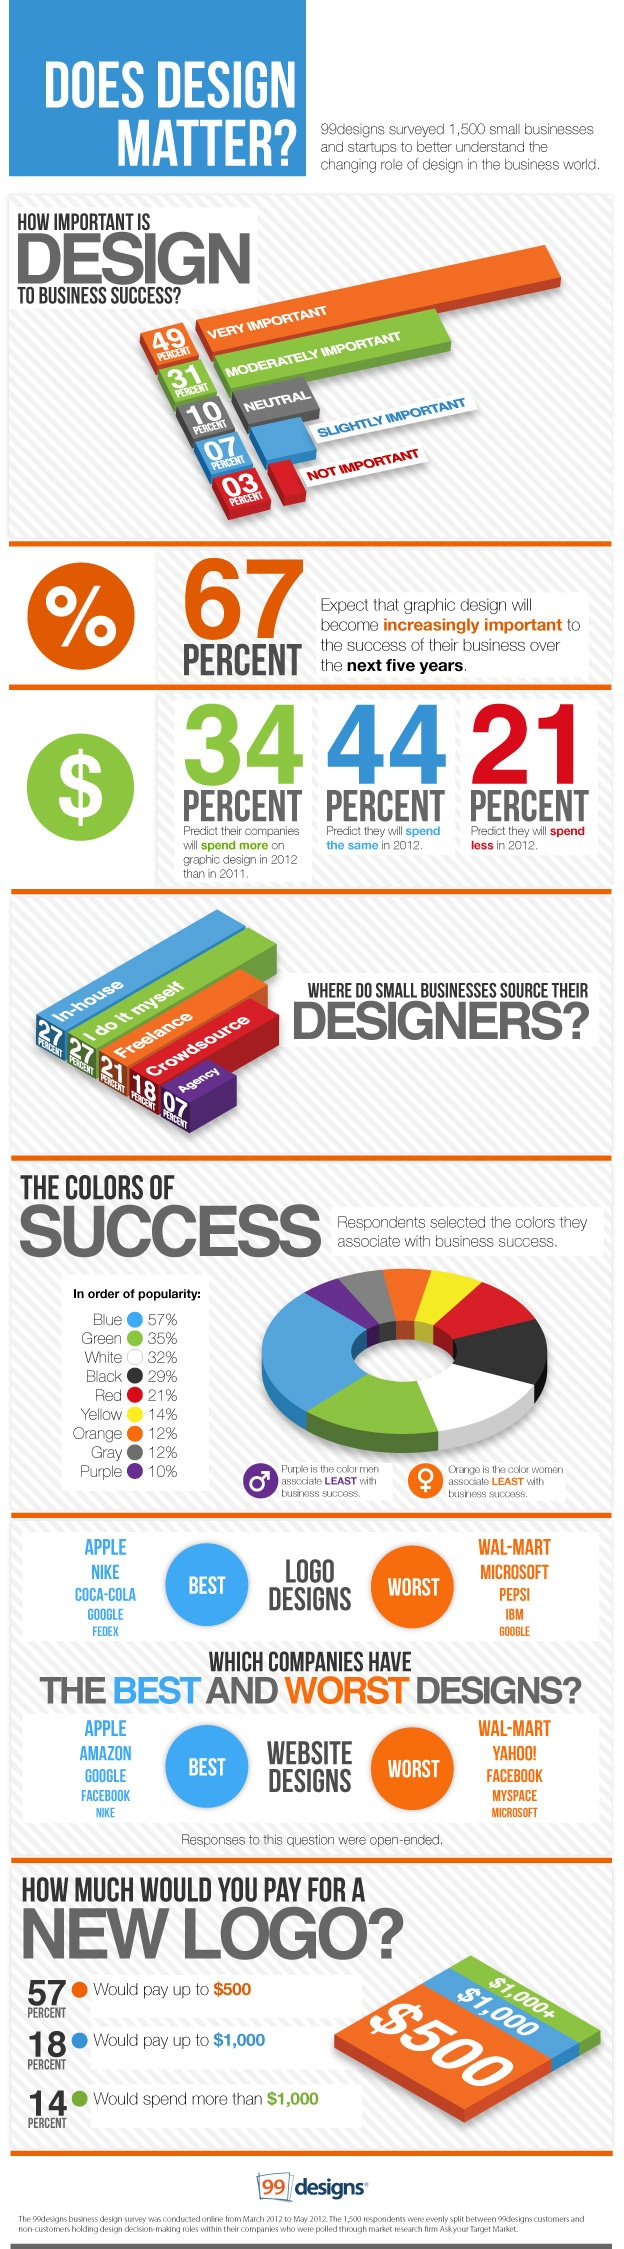 Does Design Matter? 99 Designs surveyed 1500 small businesses and startups to better understand the changing role of design in the business world.